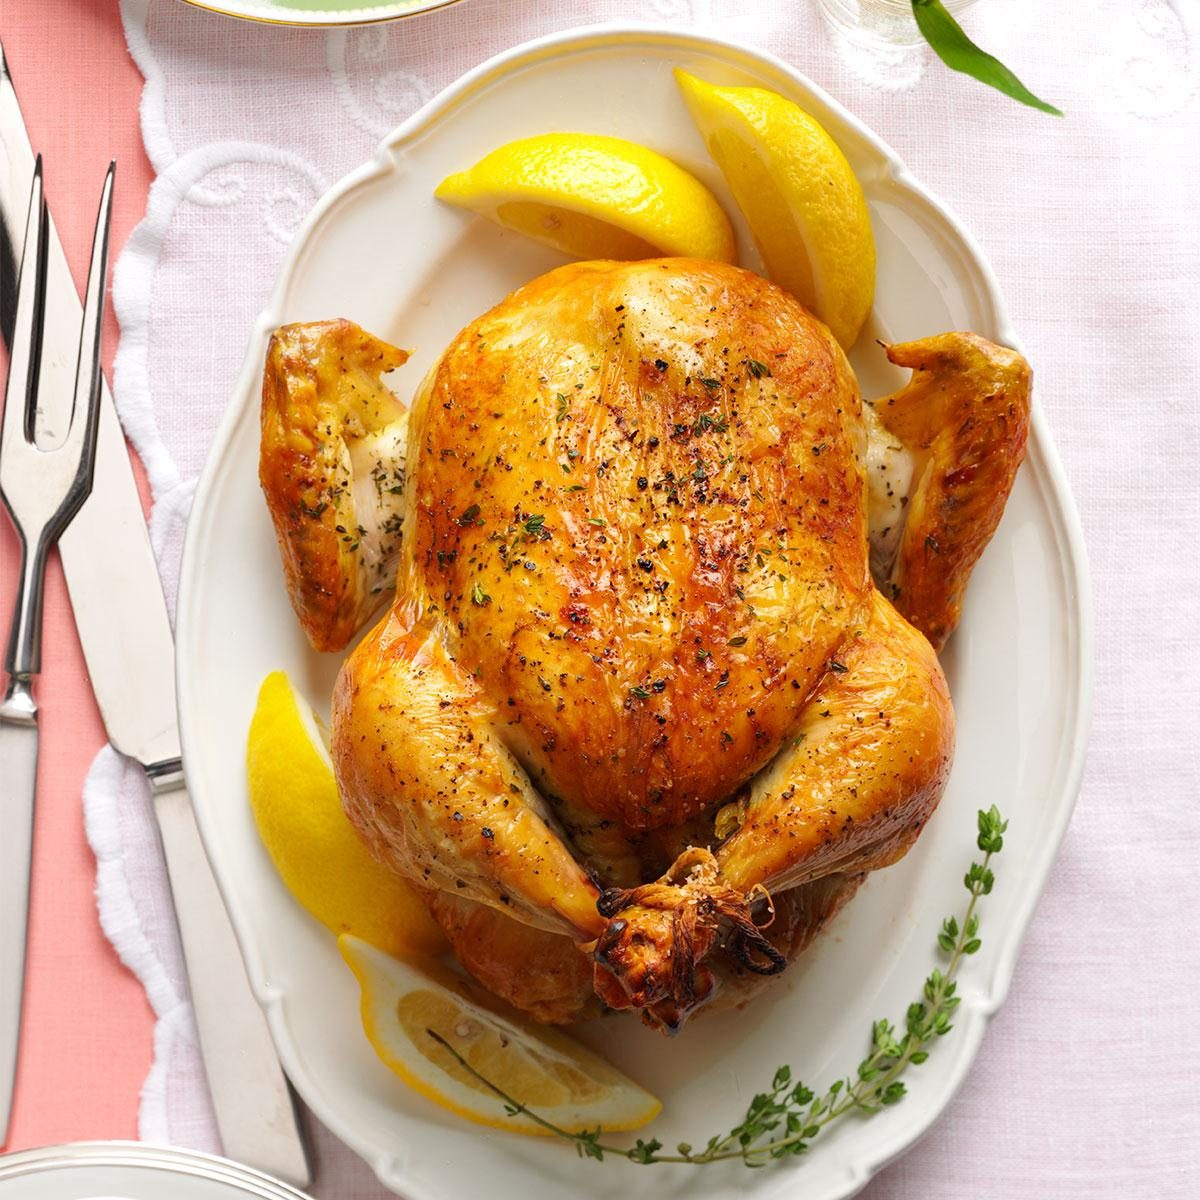 17 Baked Chicken Recipes, Perfect for Passover